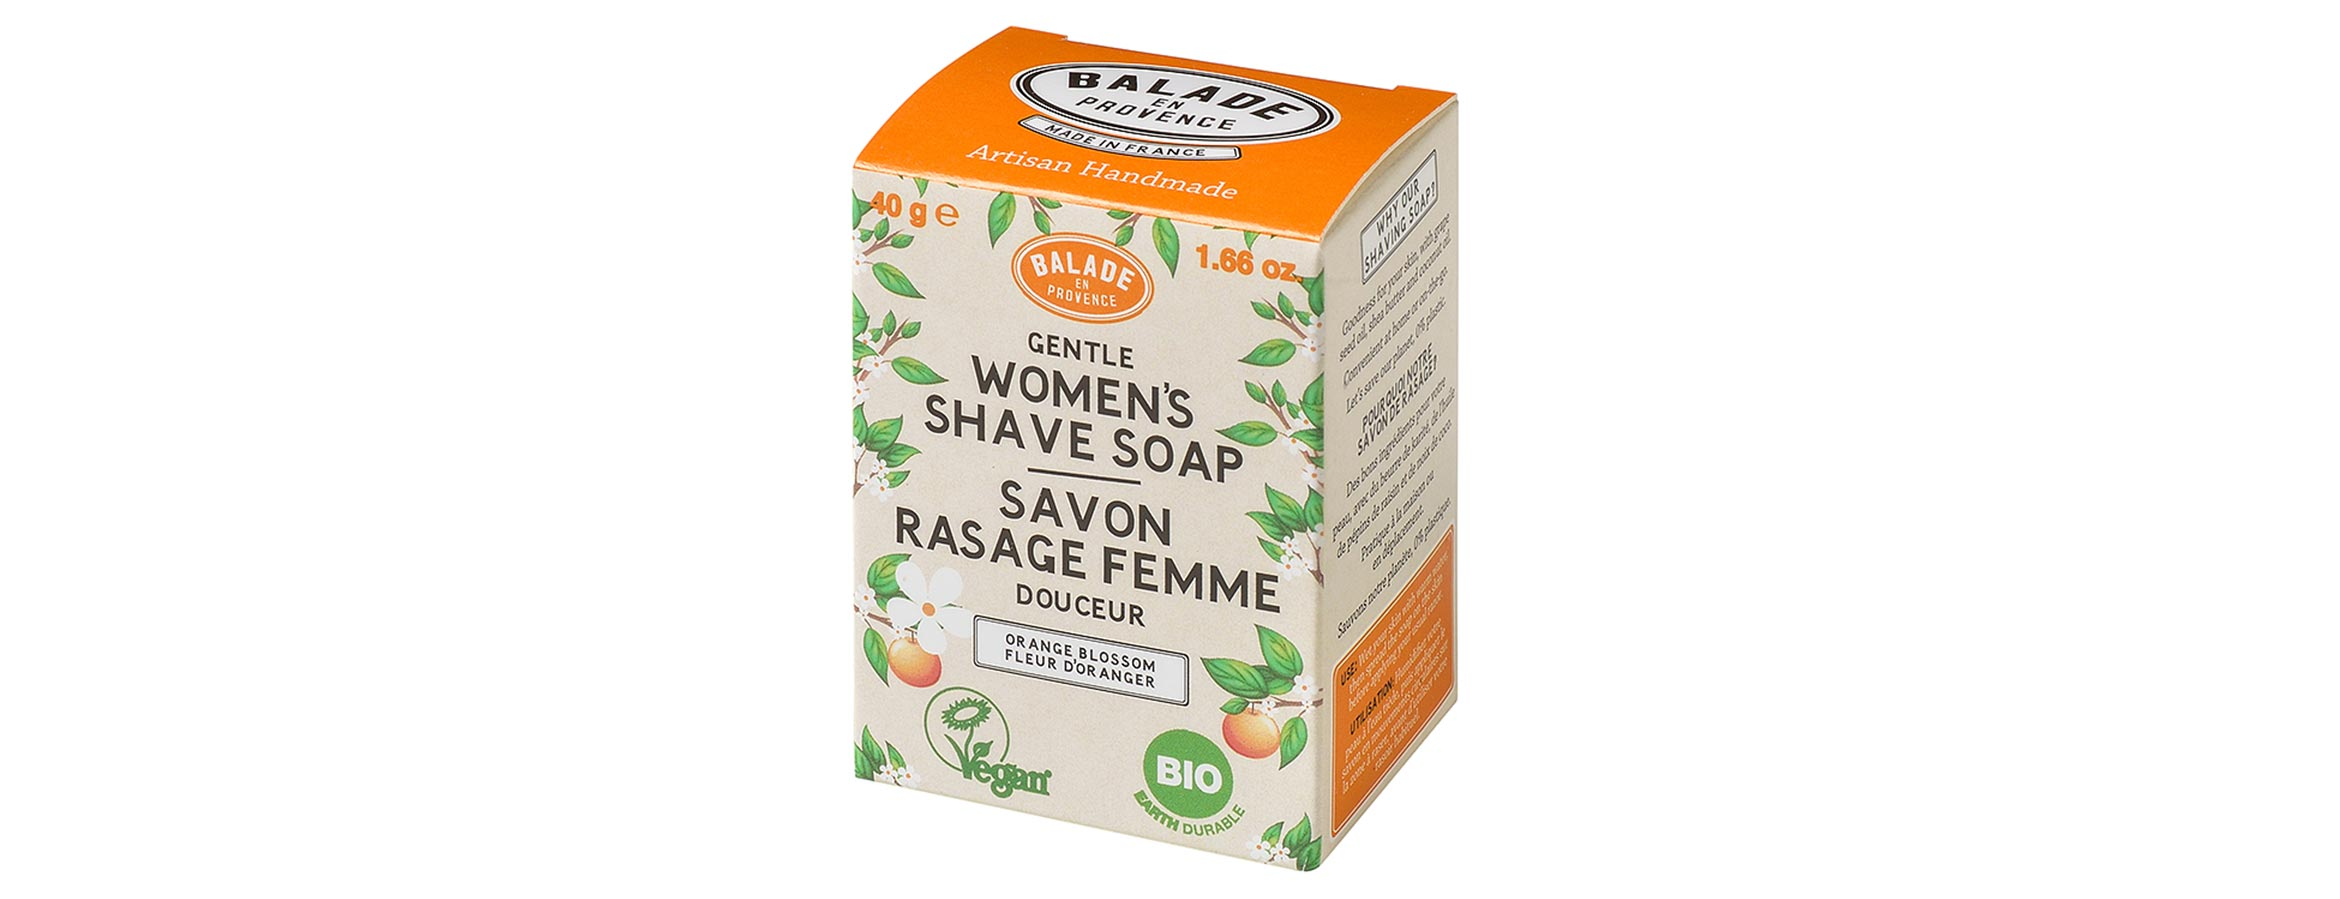 balade-en-provence-gentle-women's-shave-soap-orange-blossom